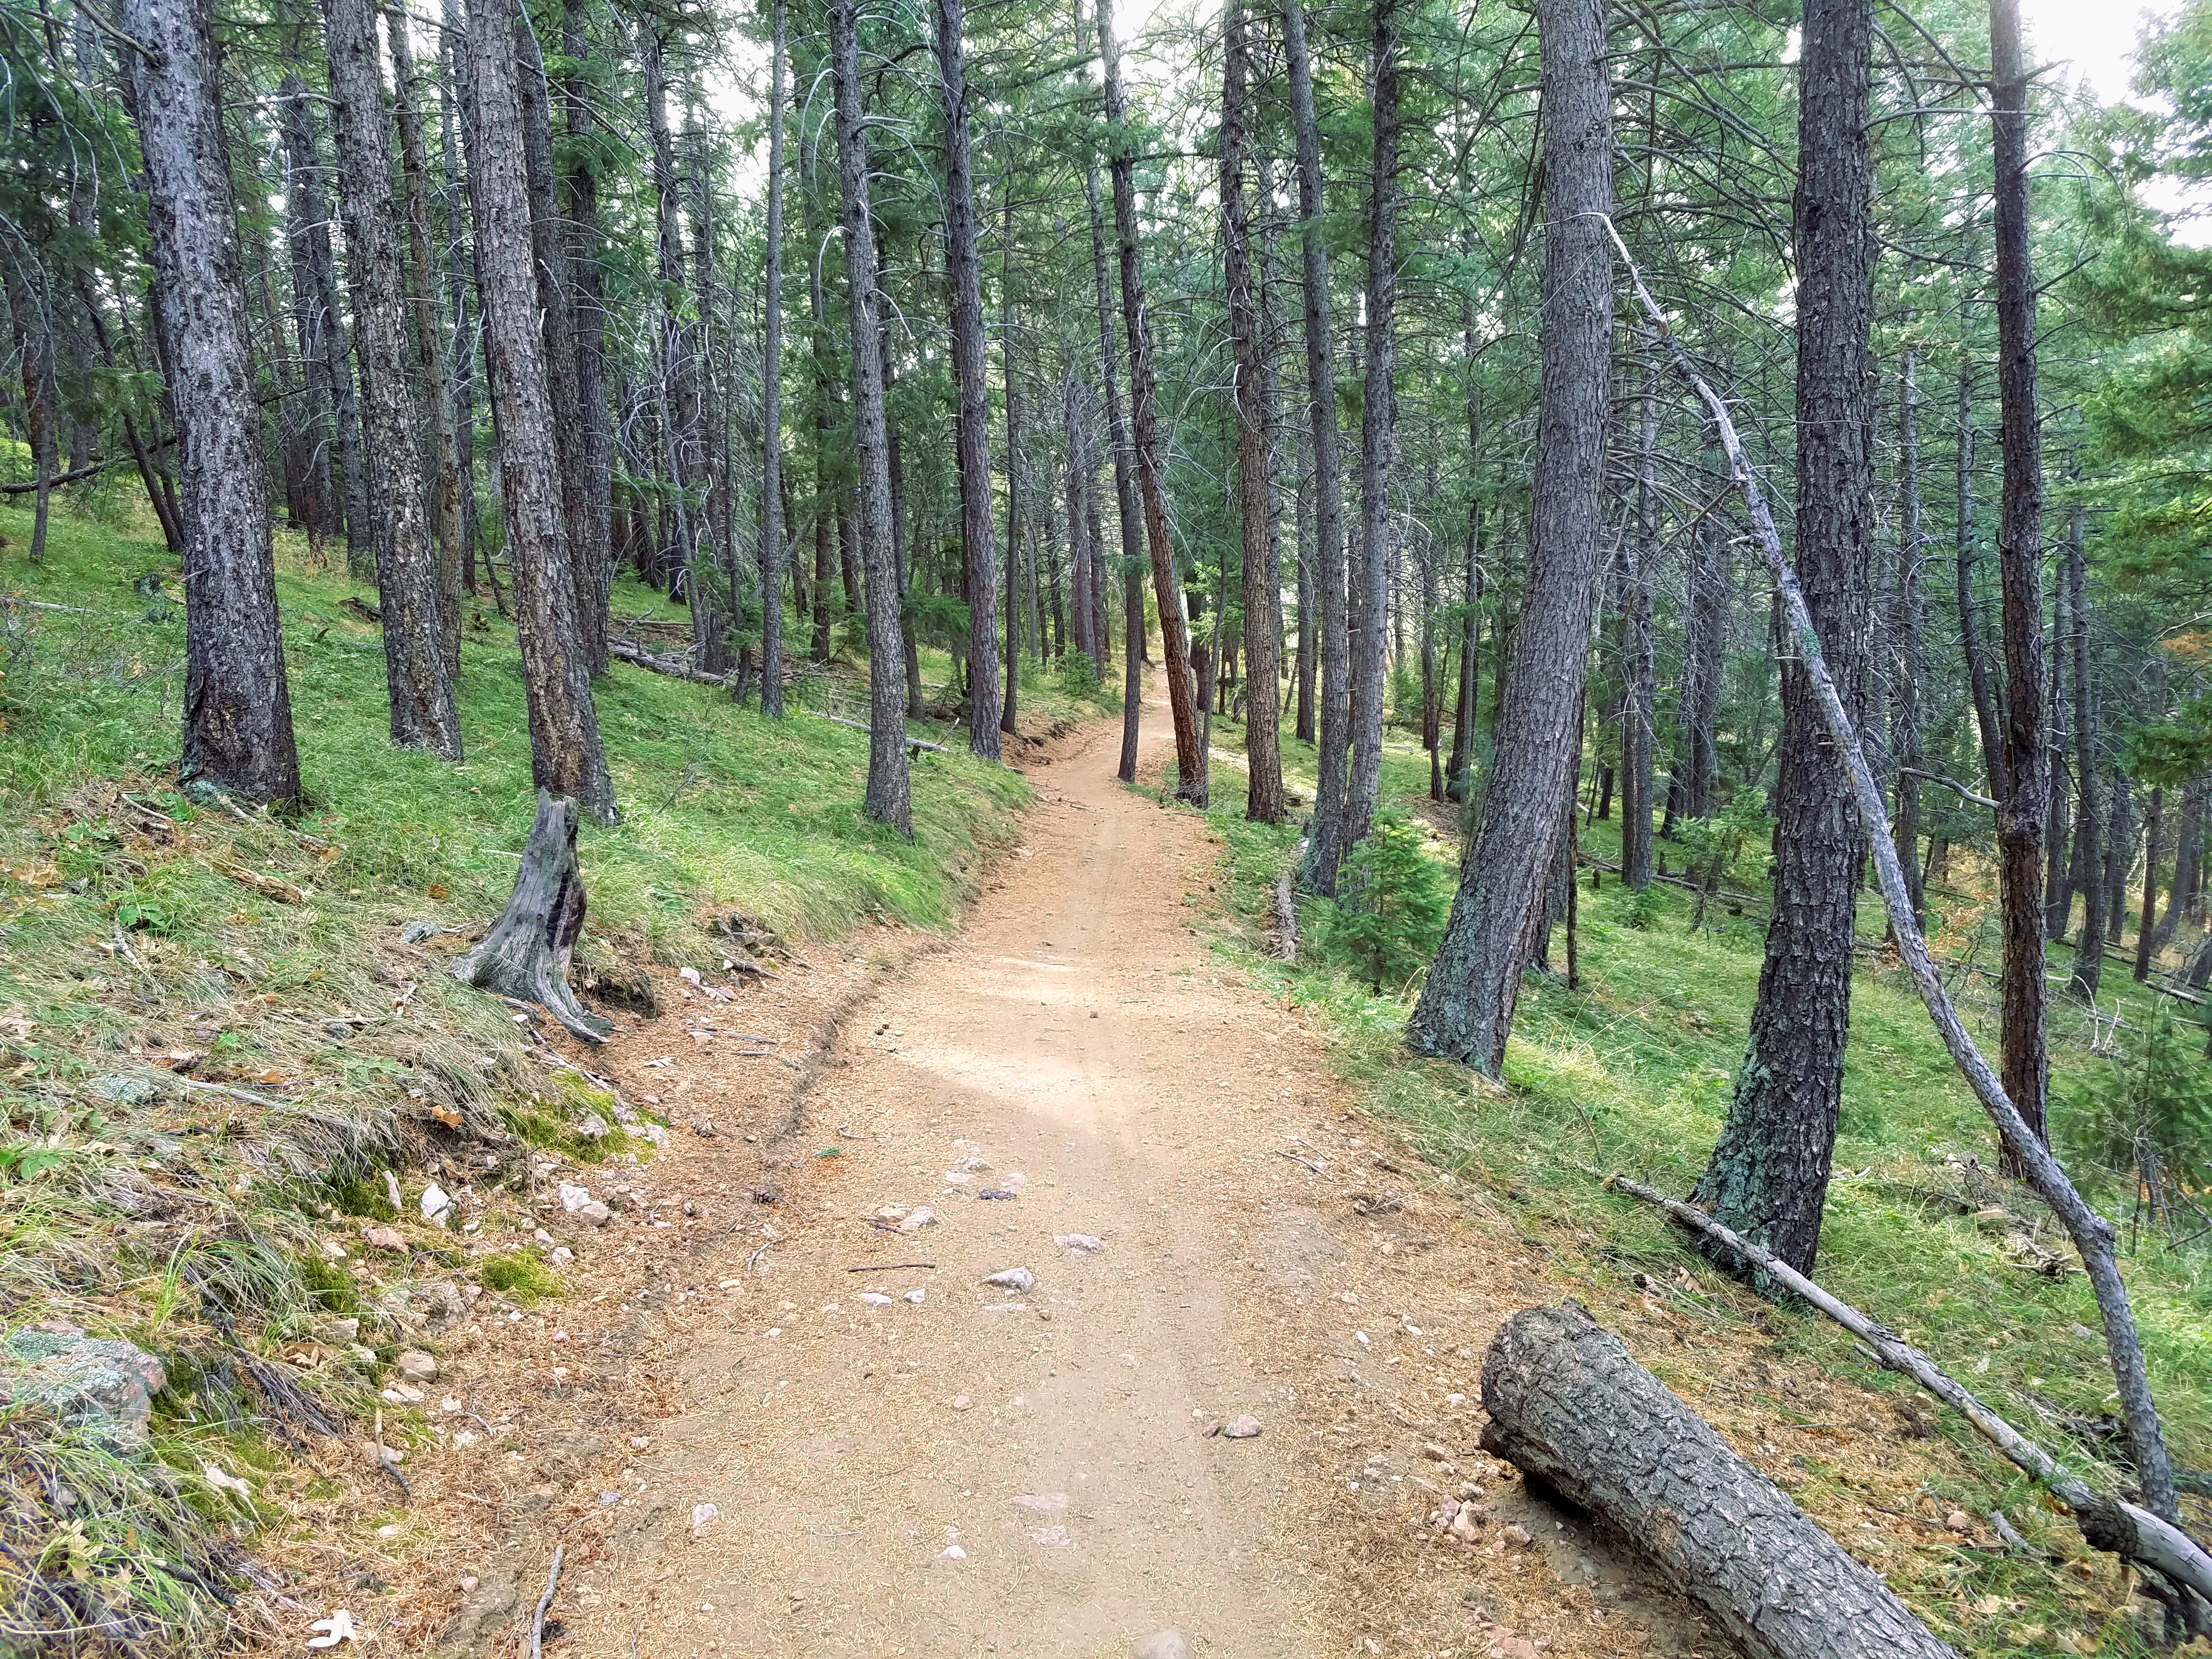 View of the forest on Homestead trail in Deer Creek Canyon Park